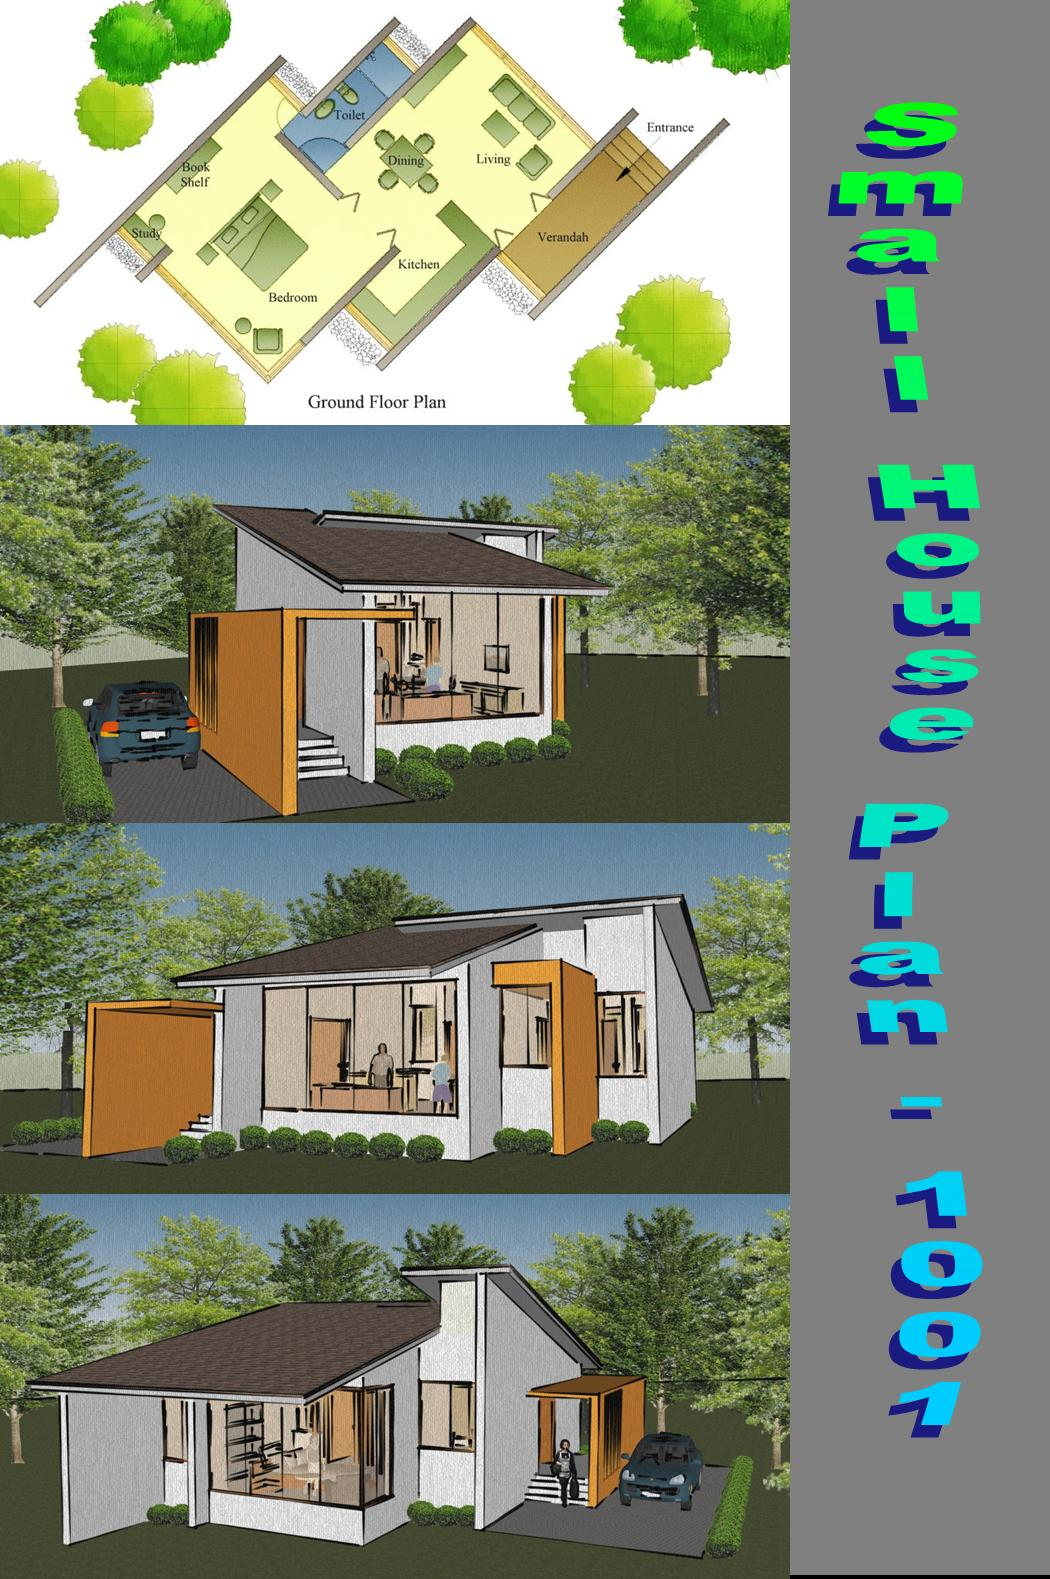 Home plans in india 5 best small home plans from for South indian small house designs